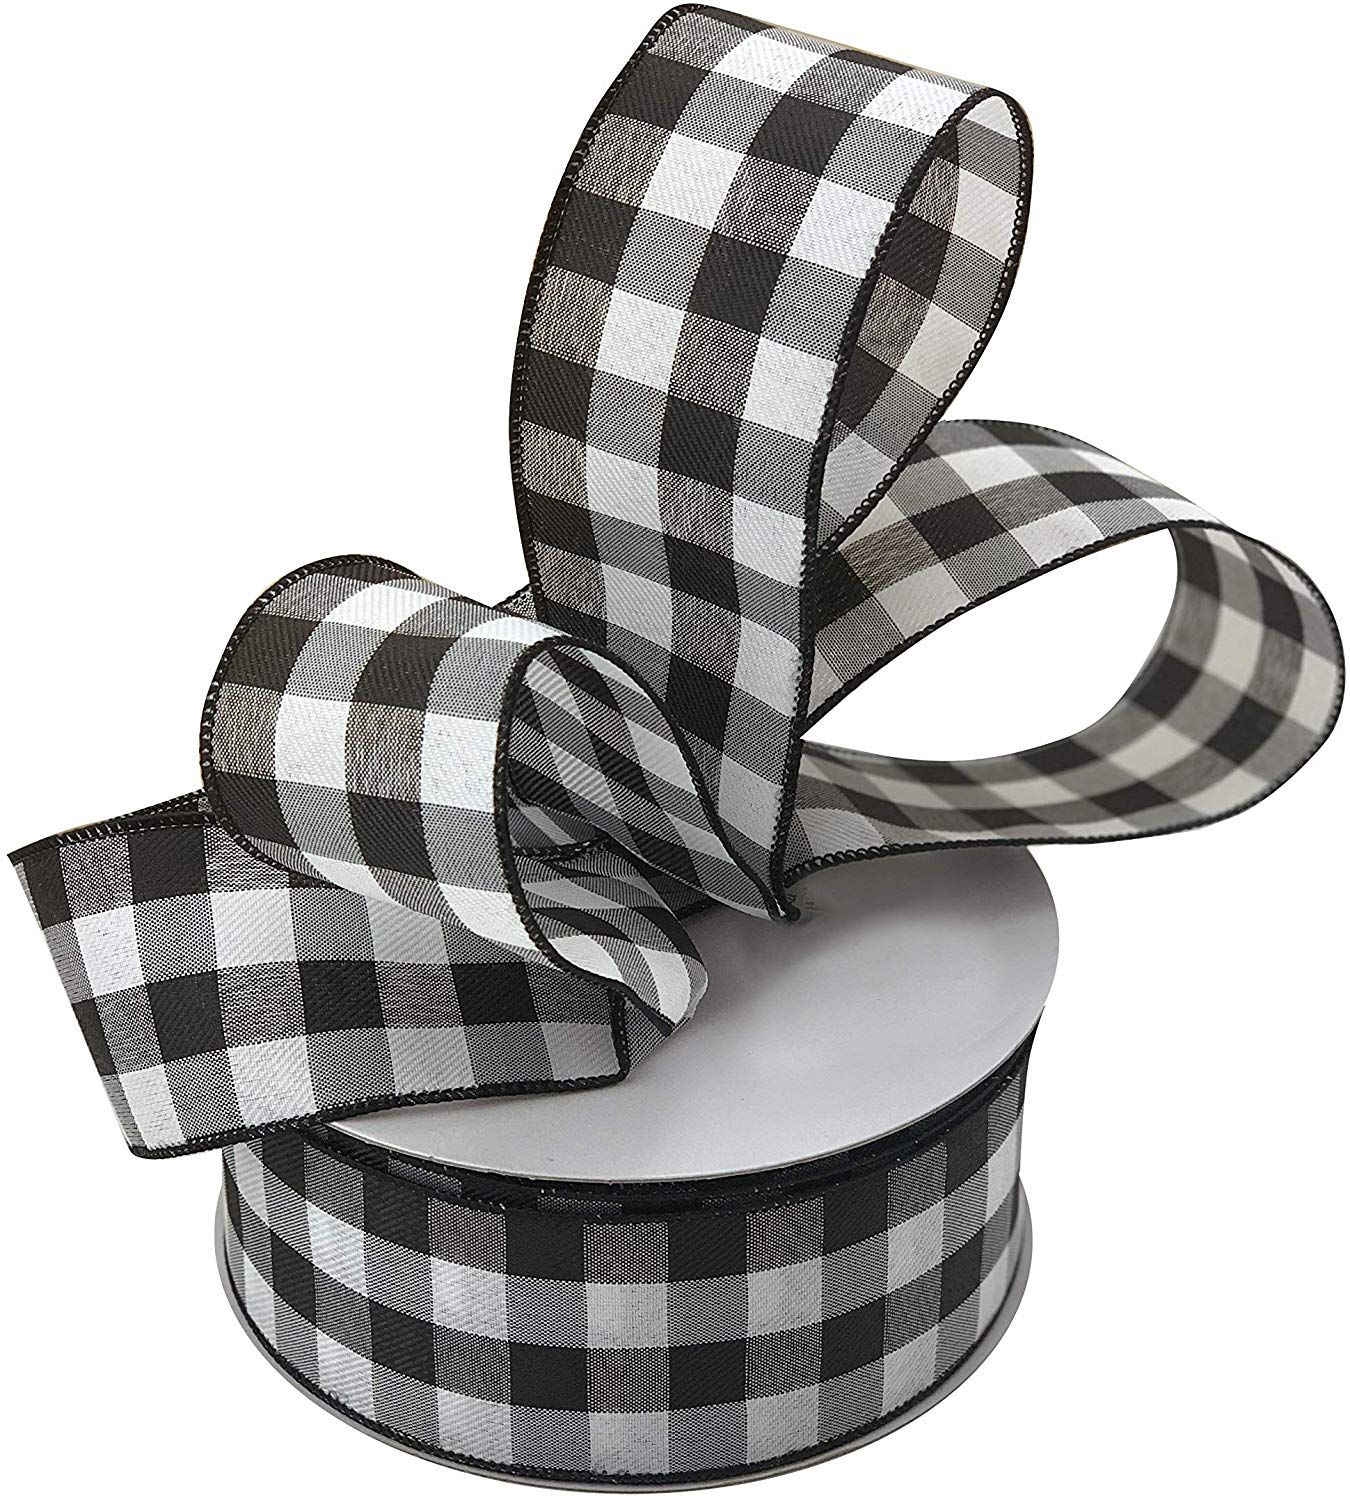 Black White Buffalo Plaid Ribbon 2 1 2 X 50 Yards Wired Edge Christmas Ribbon Wreath Farmhouse Decor Garland Presents Gift Basket Wrapping Ribbons For Crafts Walmart Com Walmart Com